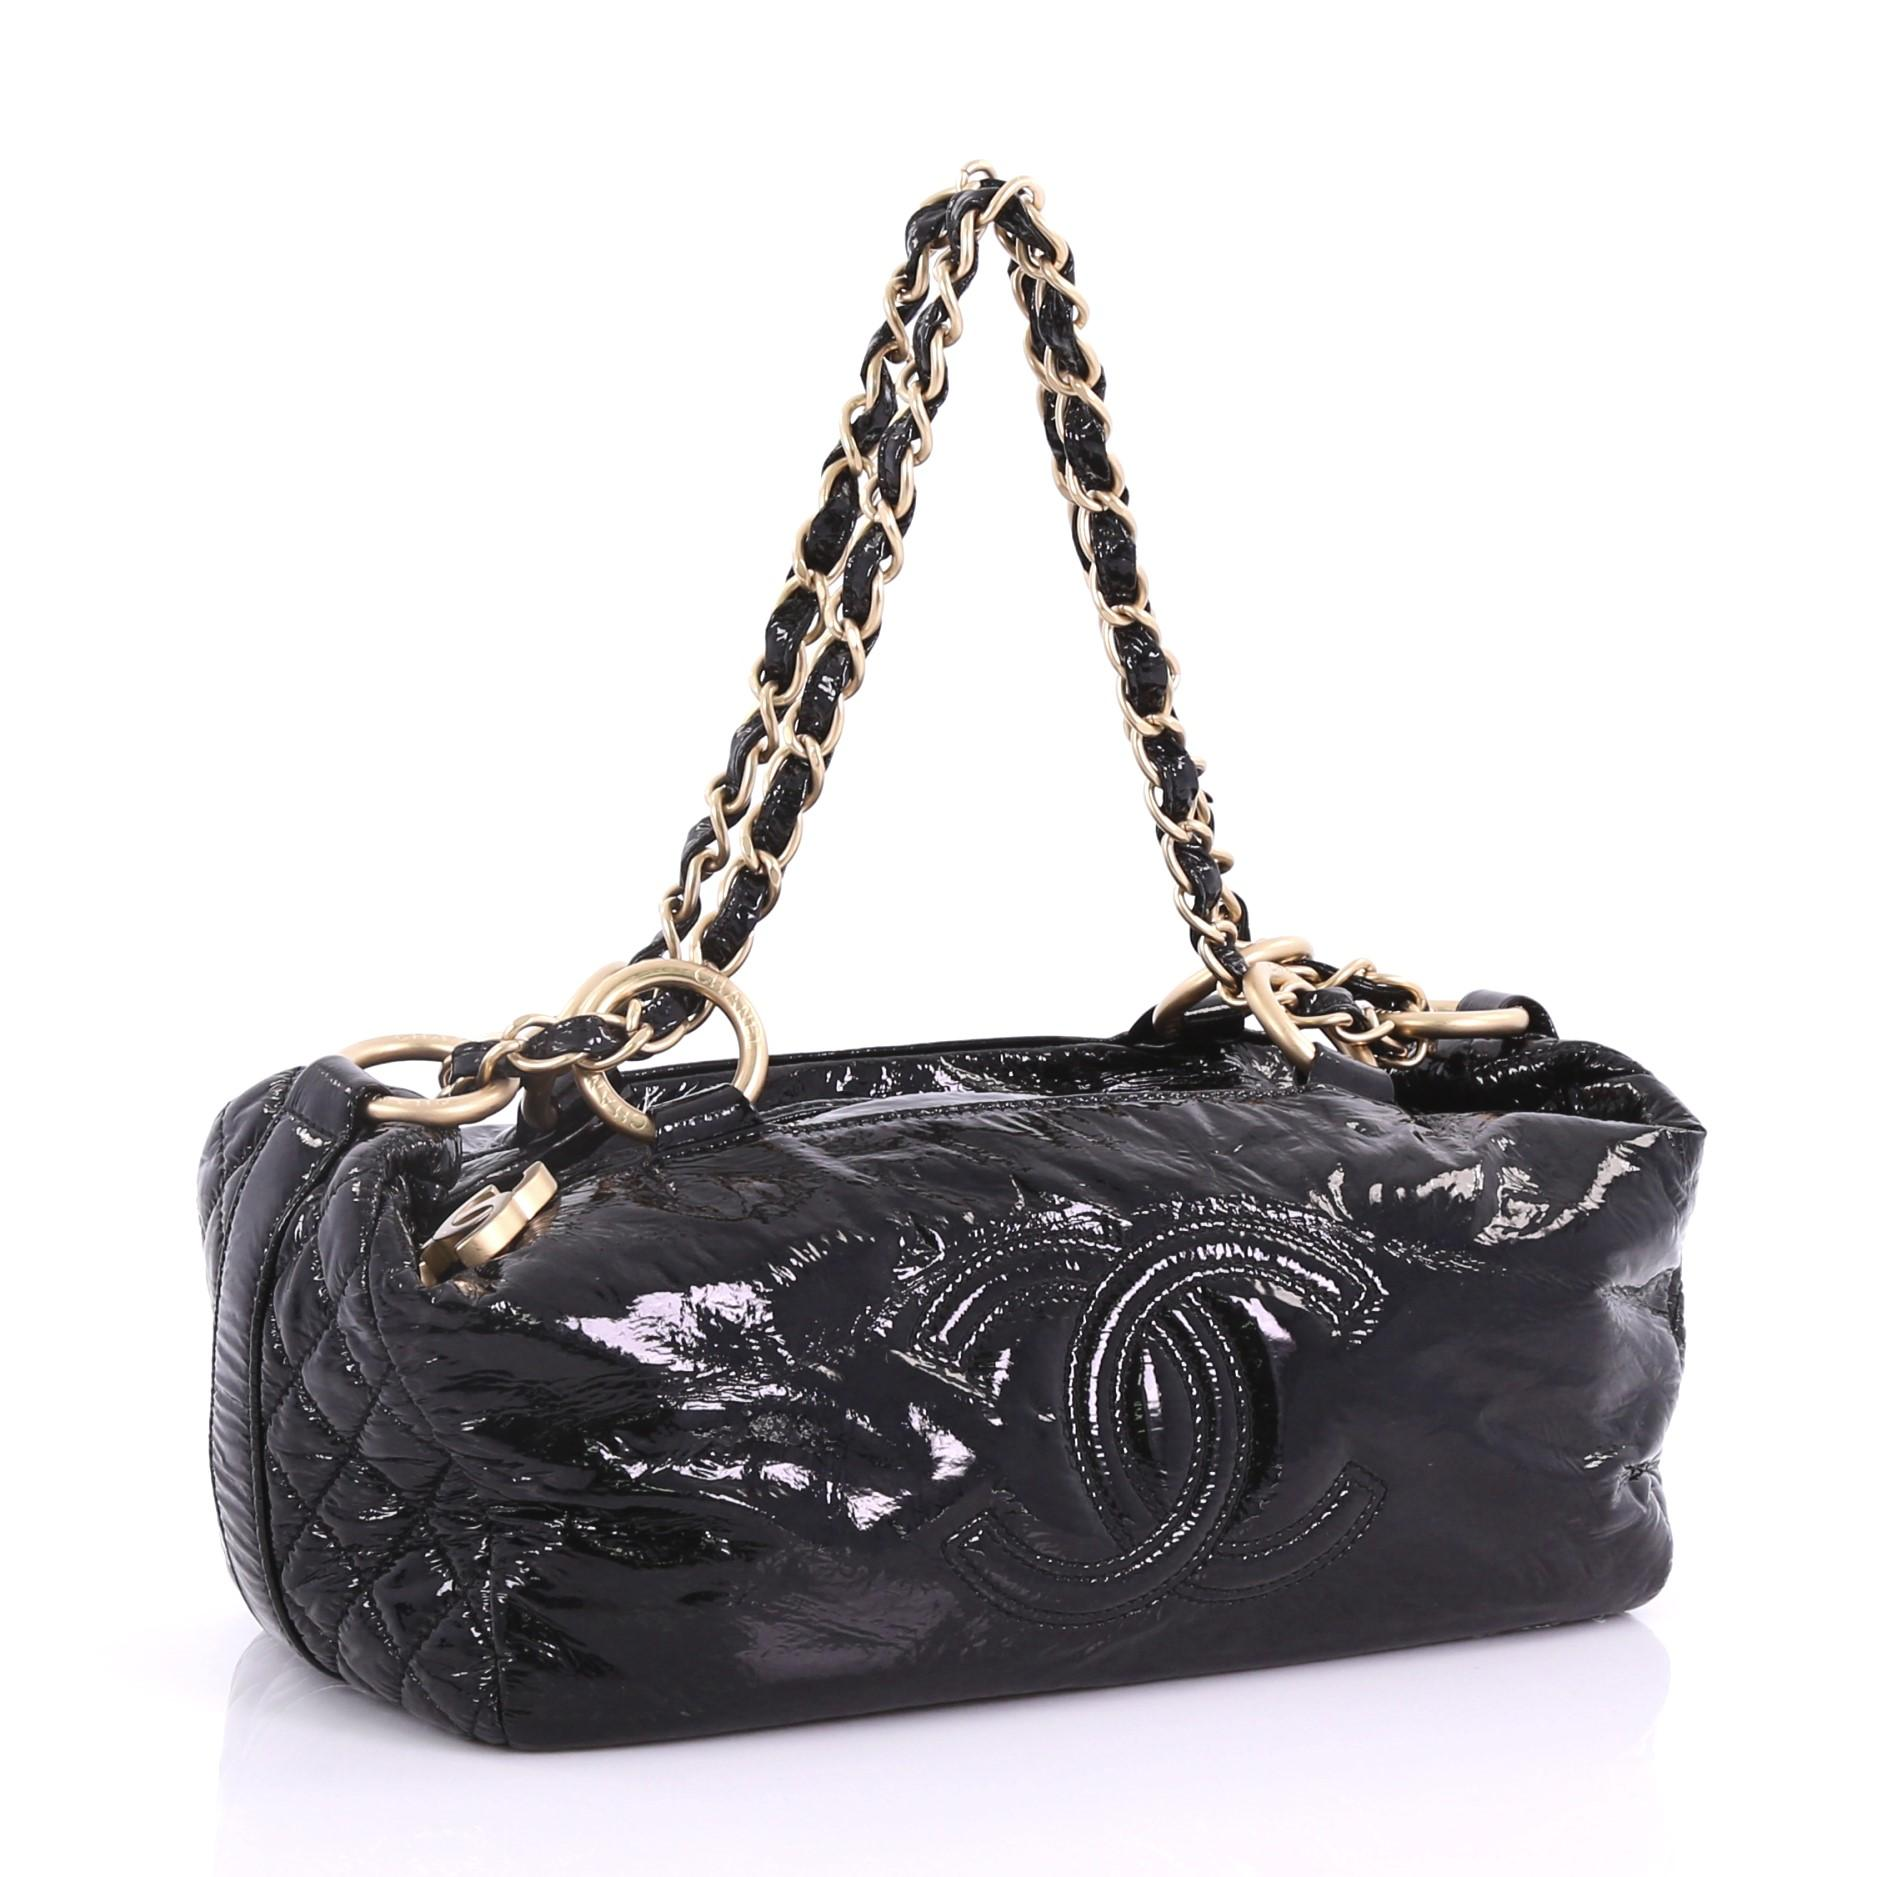 5cee87729d74 Chanel Rock and Chain Bowler Patent Vinyl Medium at 1stdibs